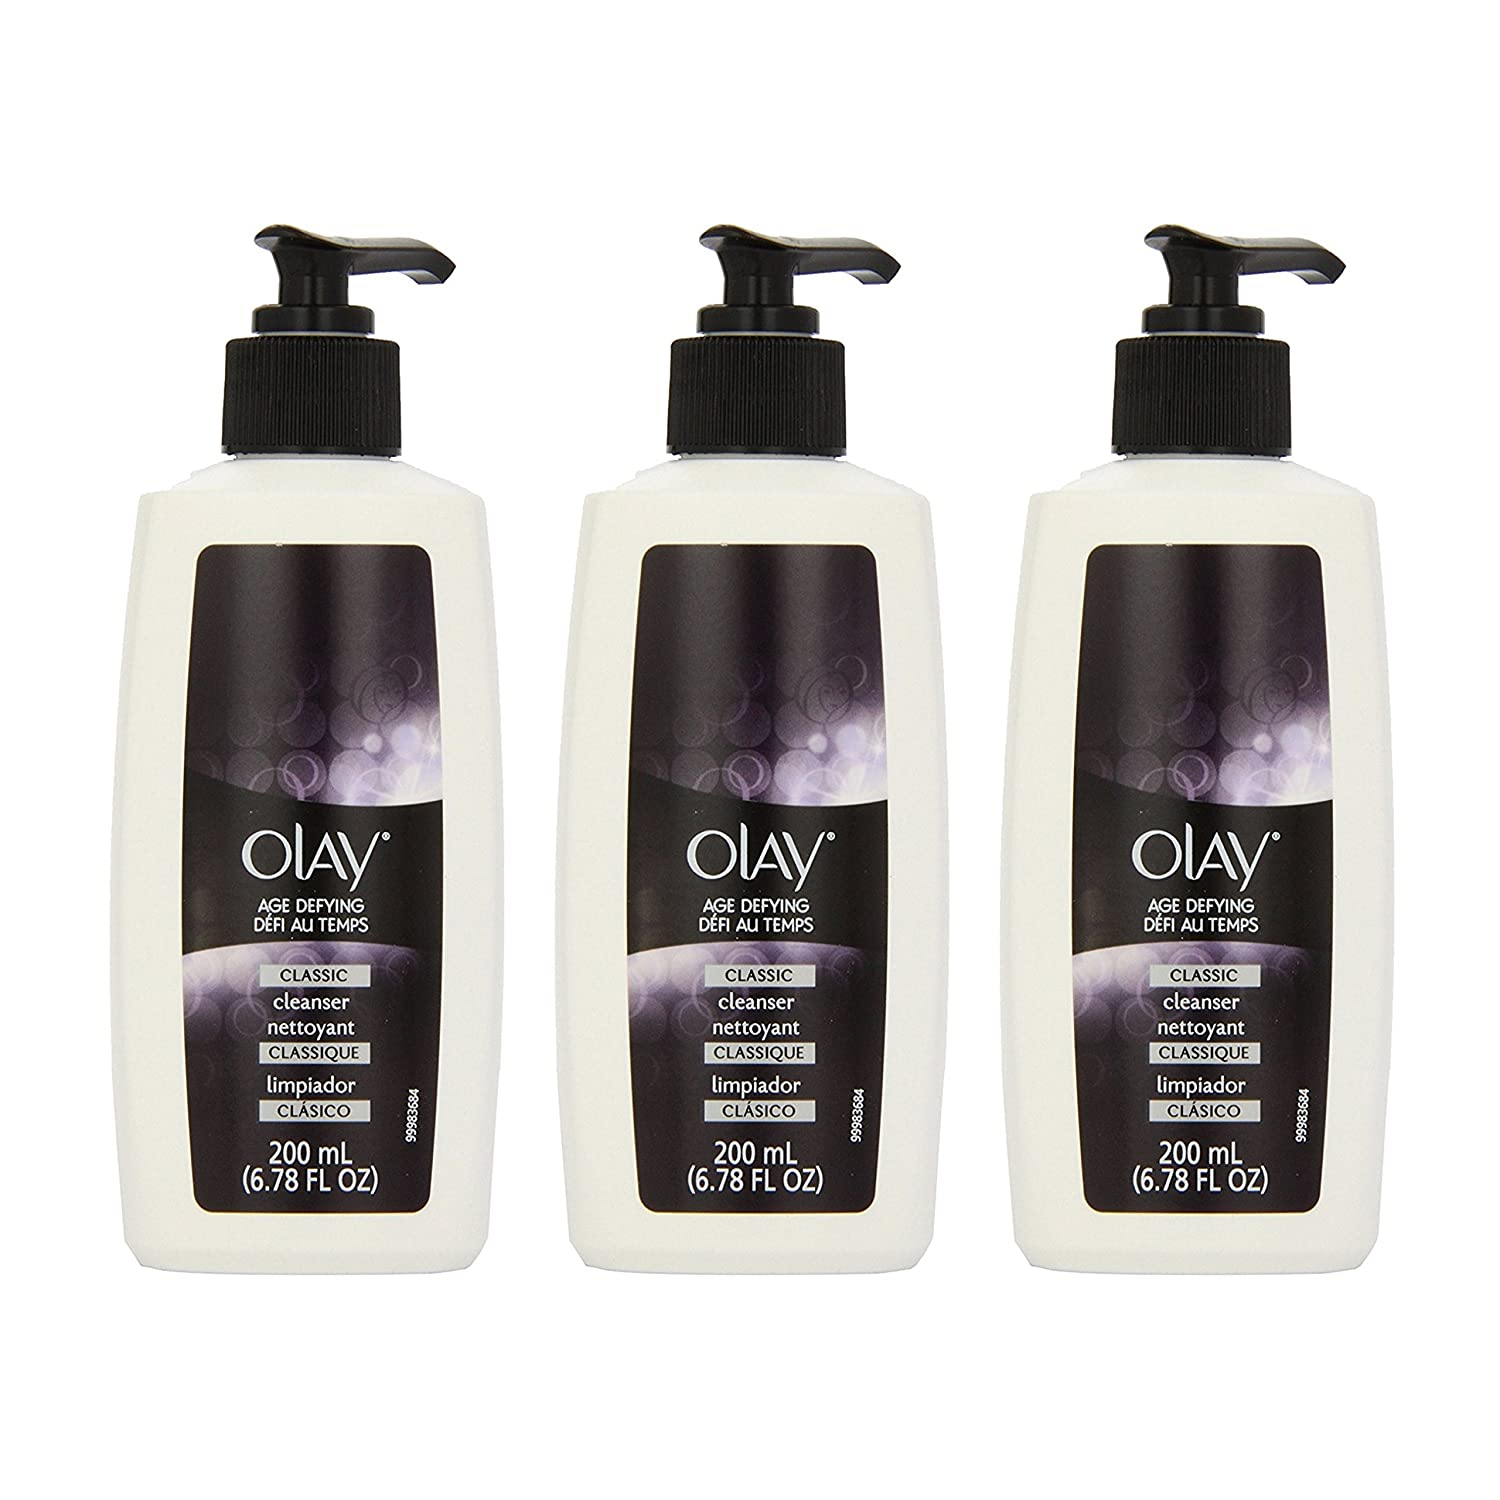 Amazon.com : Olay Age Defying Classic Cleanser, 6.8 Fluid Ounce (Pack of 3) : Facial Cleansing Products : Beauty